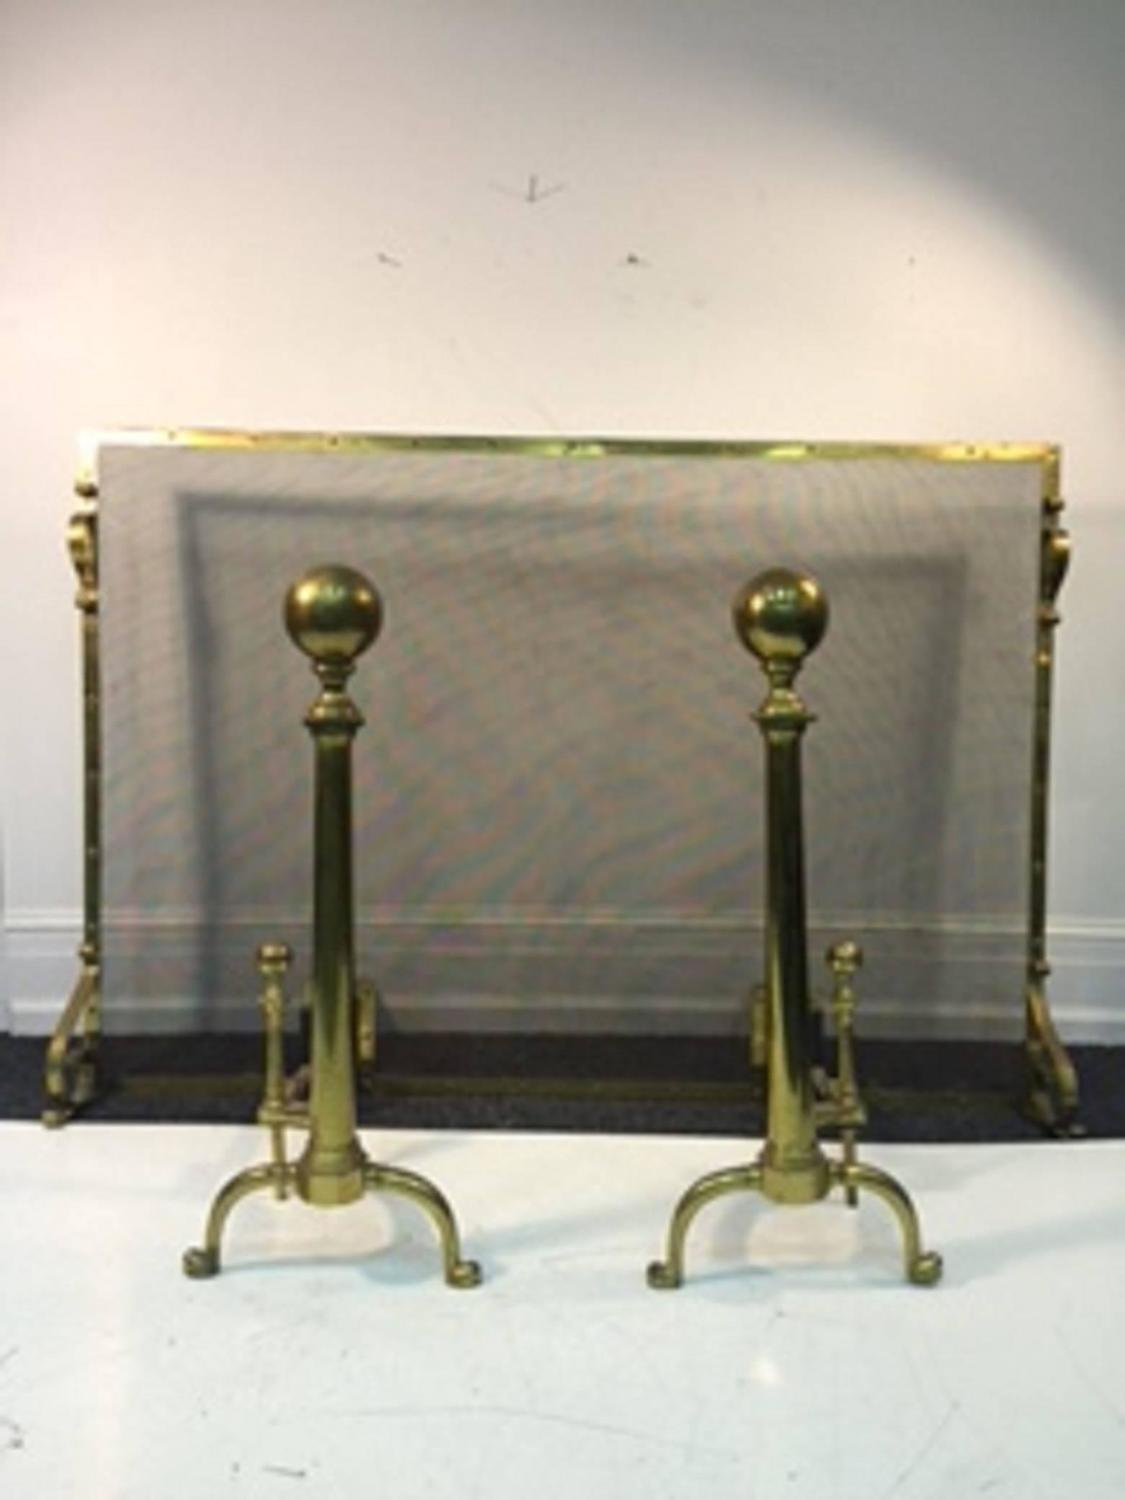 Exceptional Giant Brass Fireplace Screen With Andirons For Sale At 1stdibs